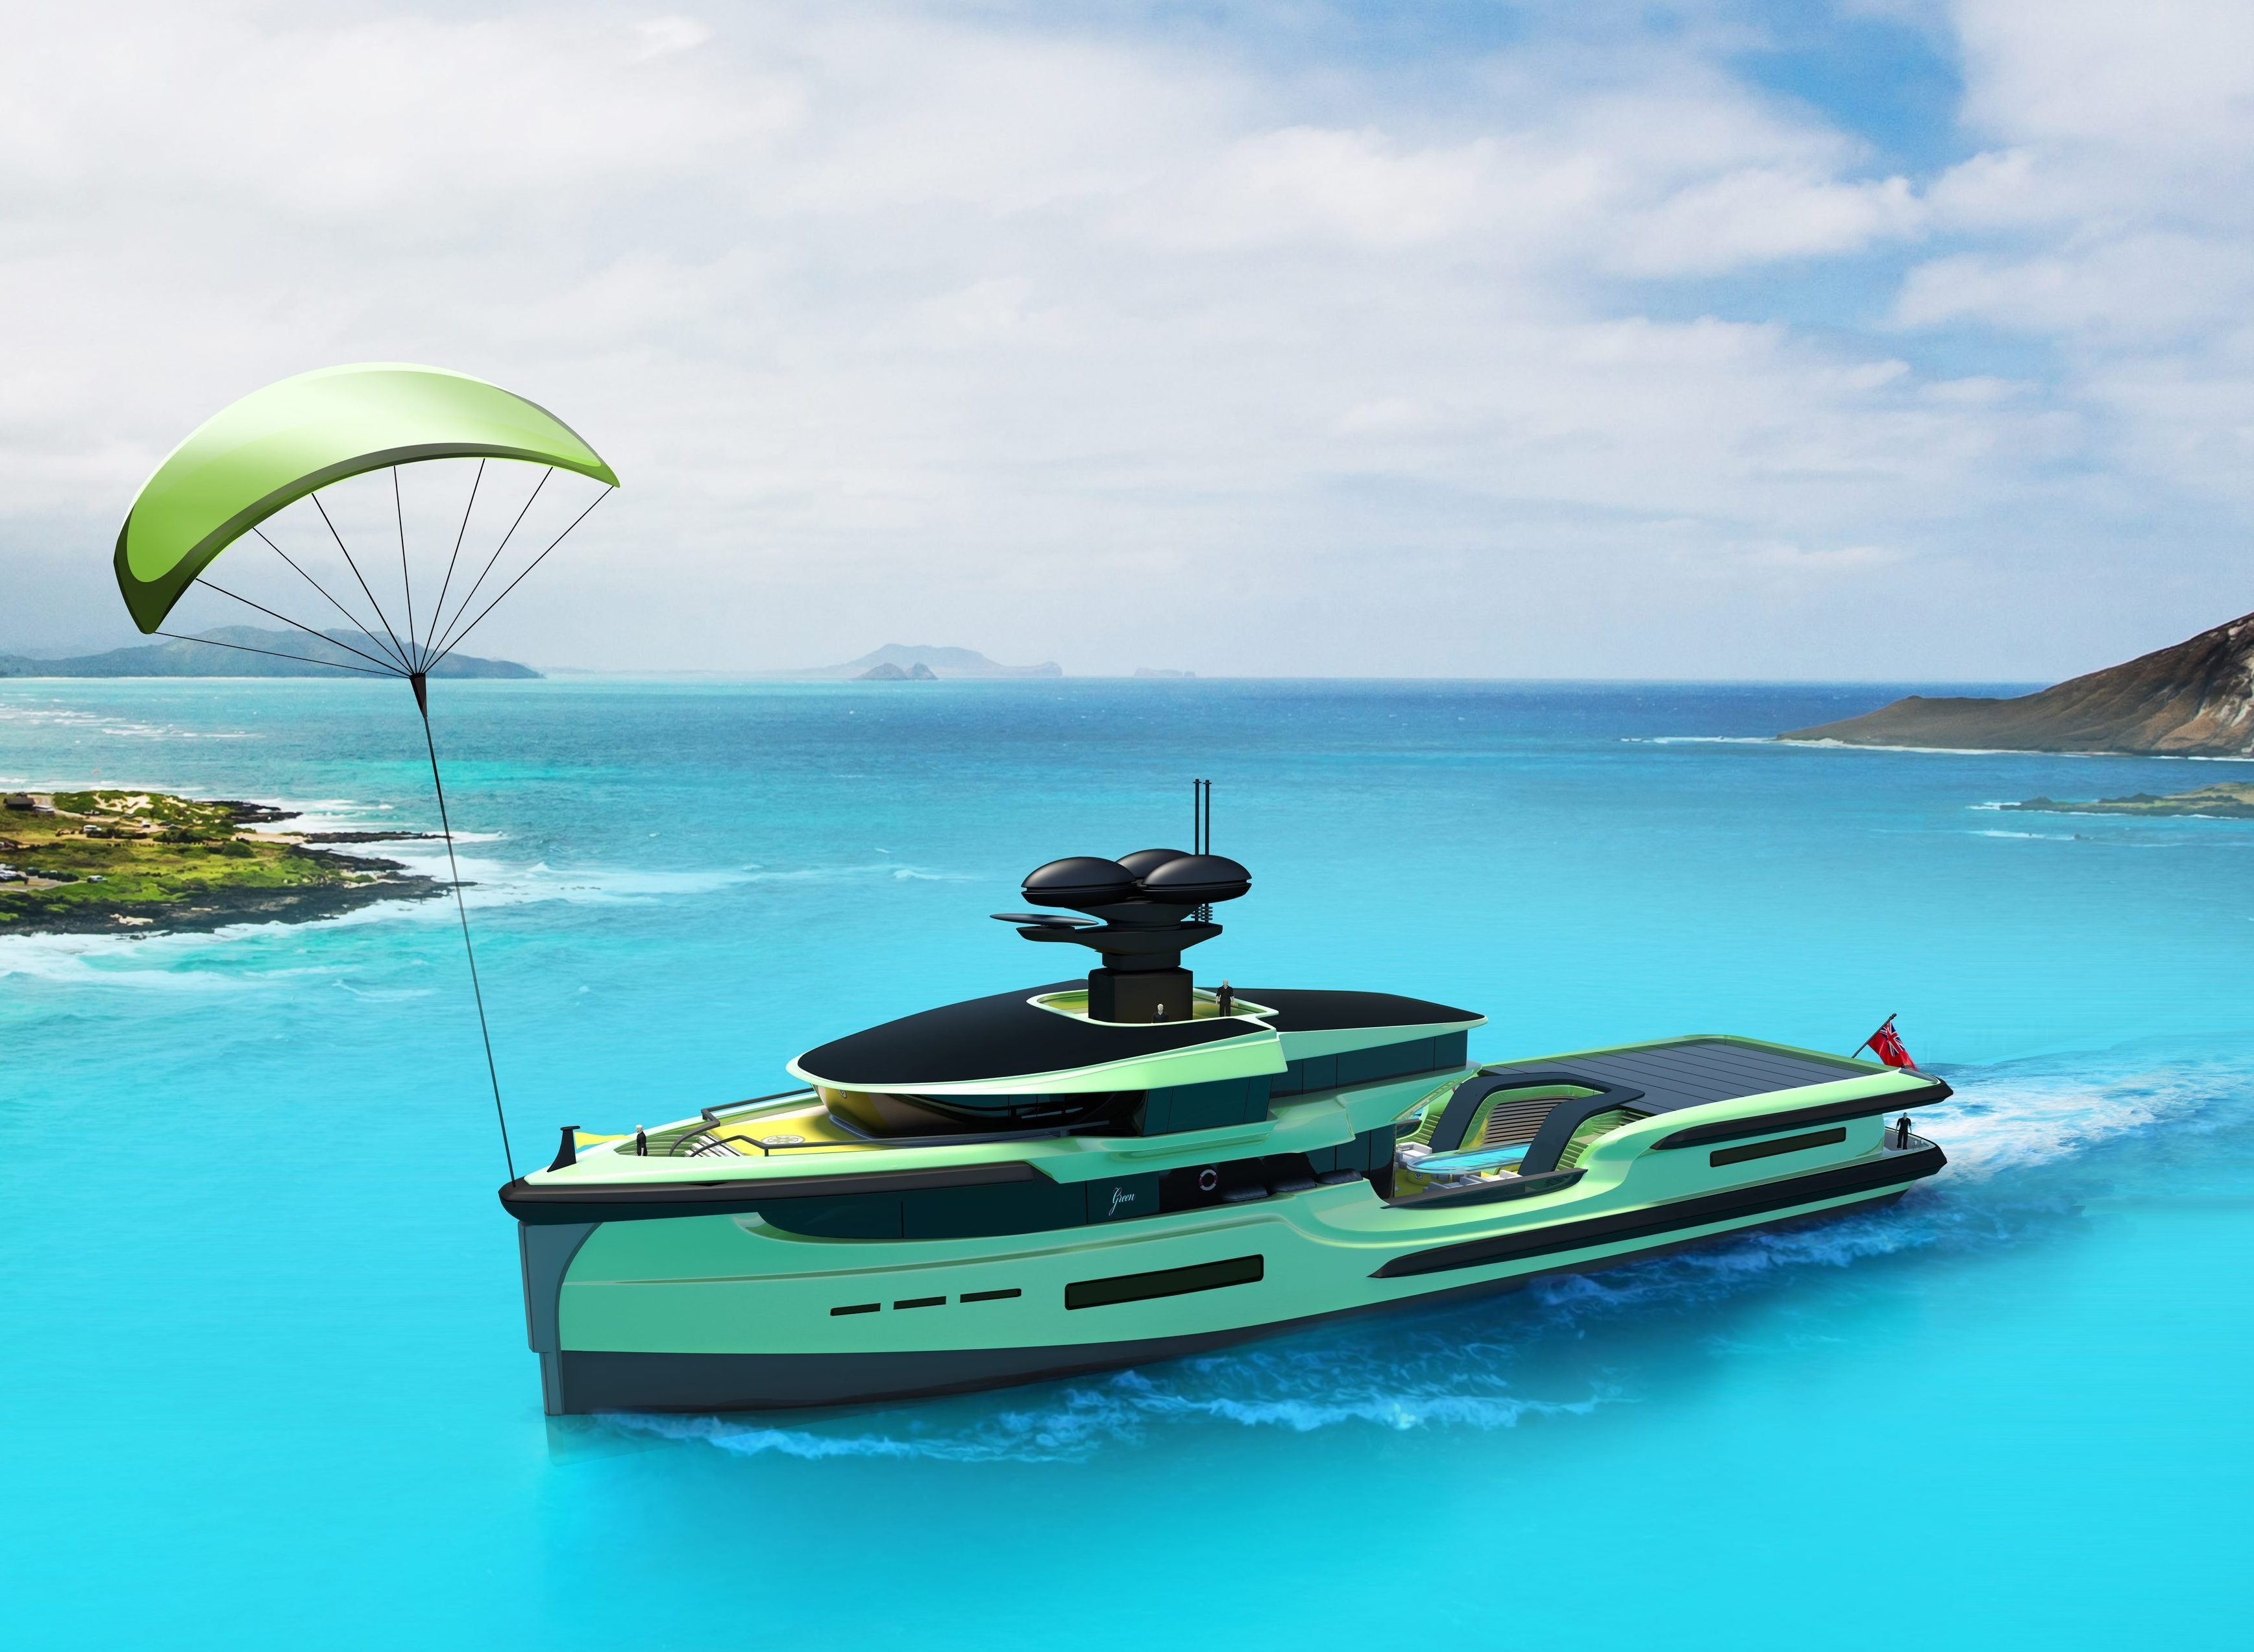 Green Expedition's 'skysail' kite rig is designed to propel the ship along and conserve fuel